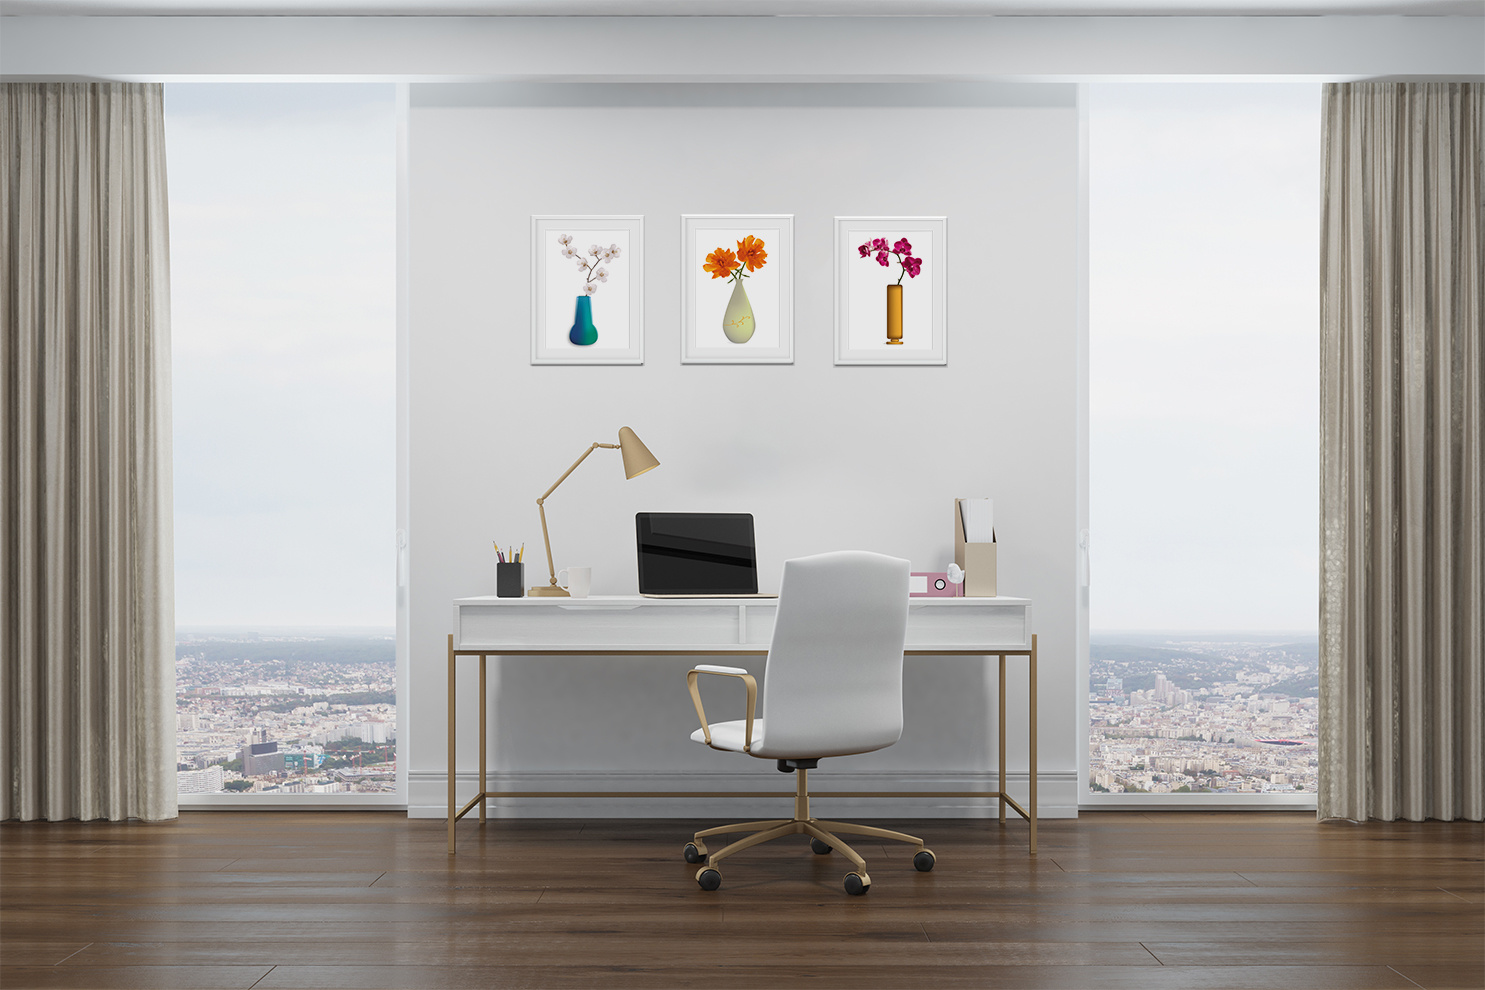 Flower vases high office